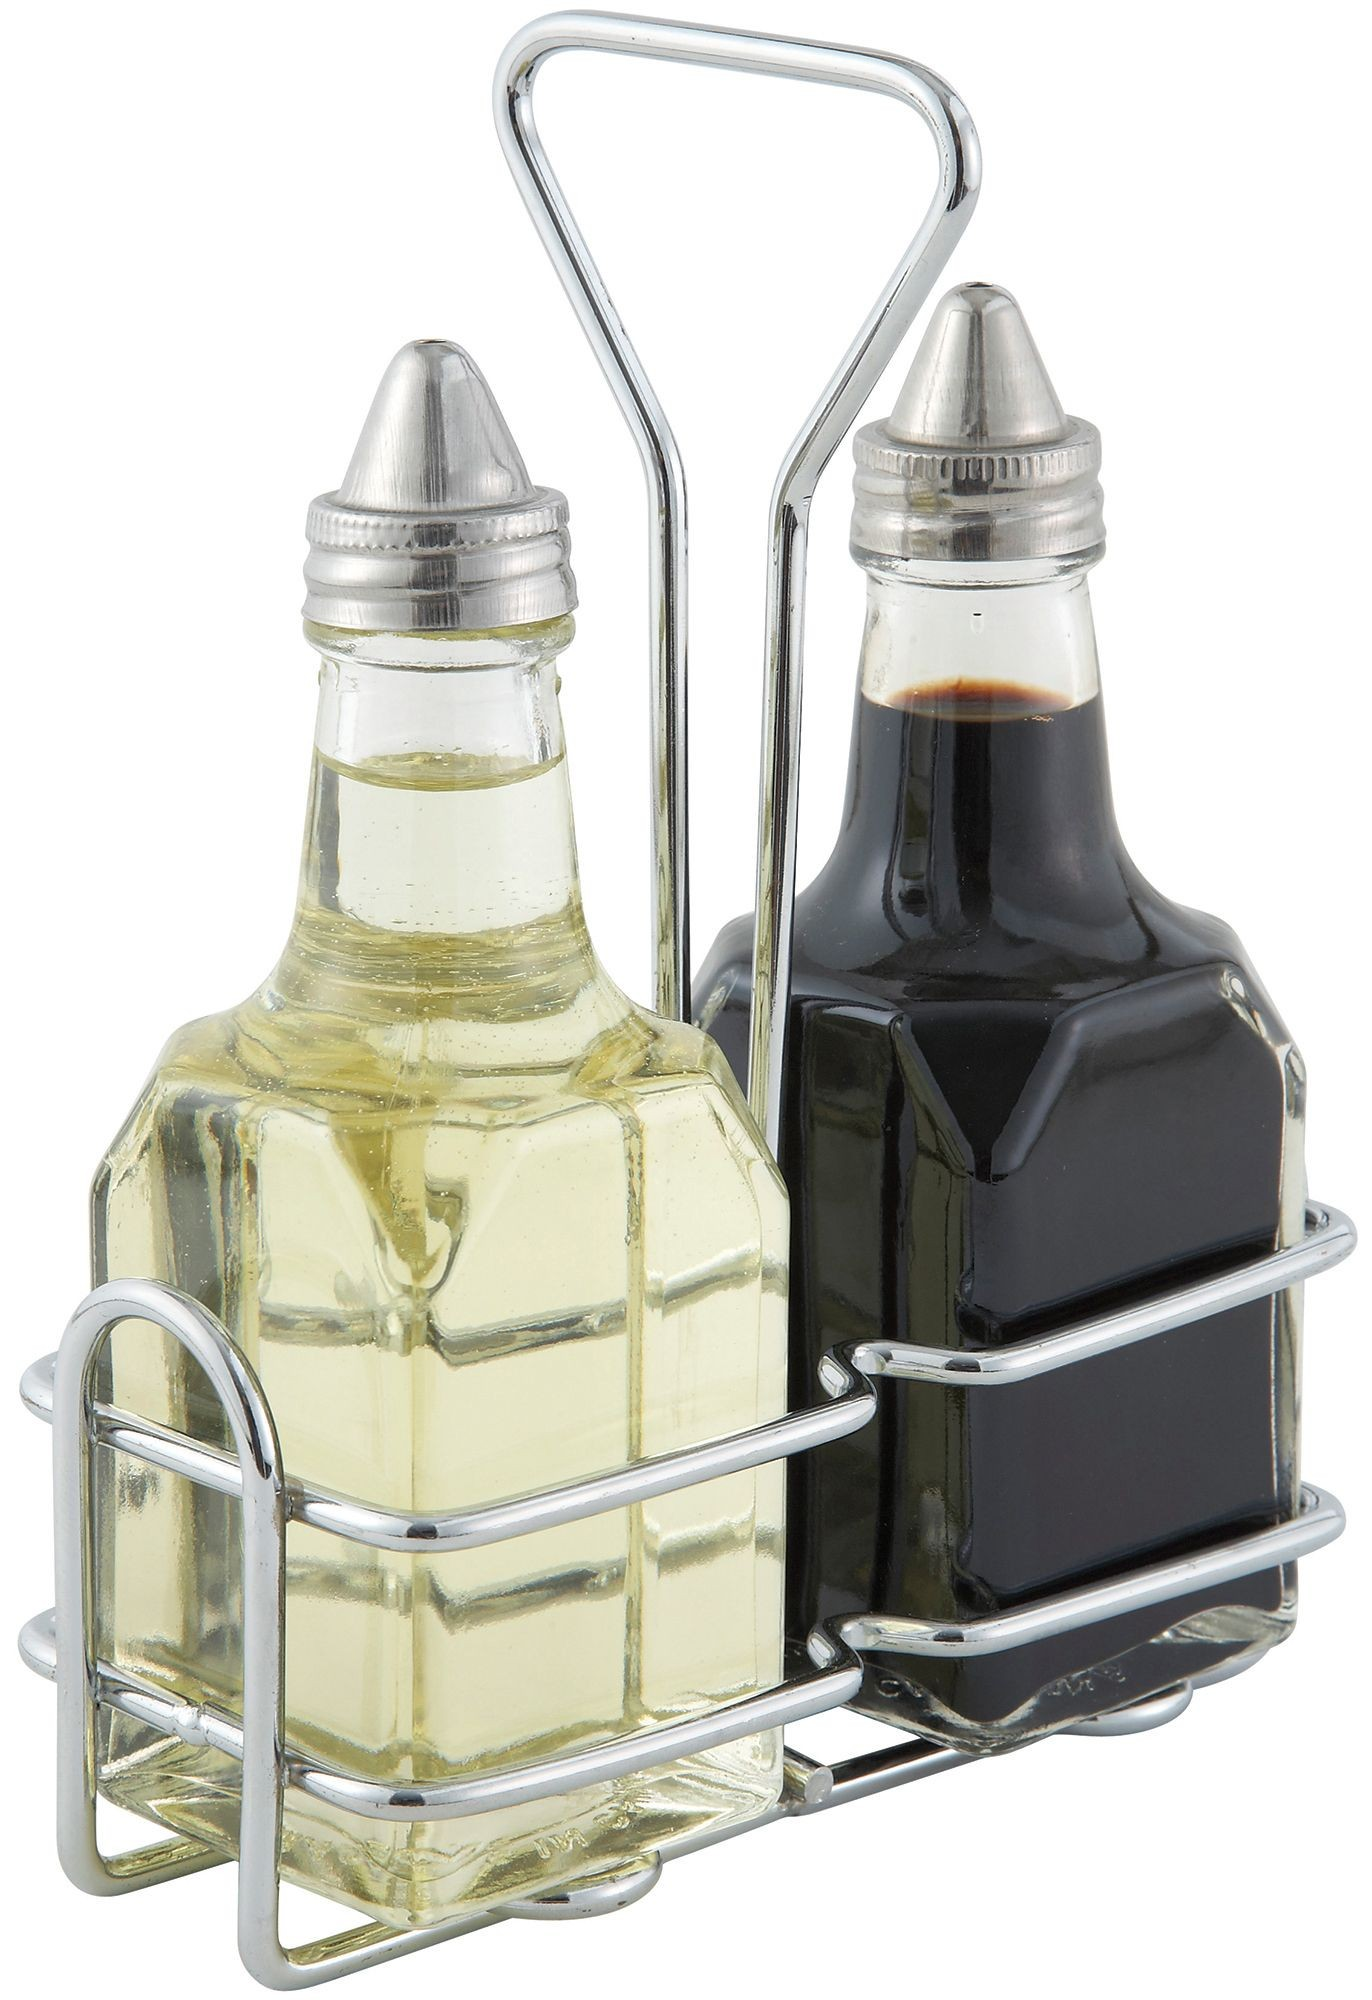 Winco G-104S Oil and Vinegar 6 oz. Cruet Set with Chrome-Plated Rack